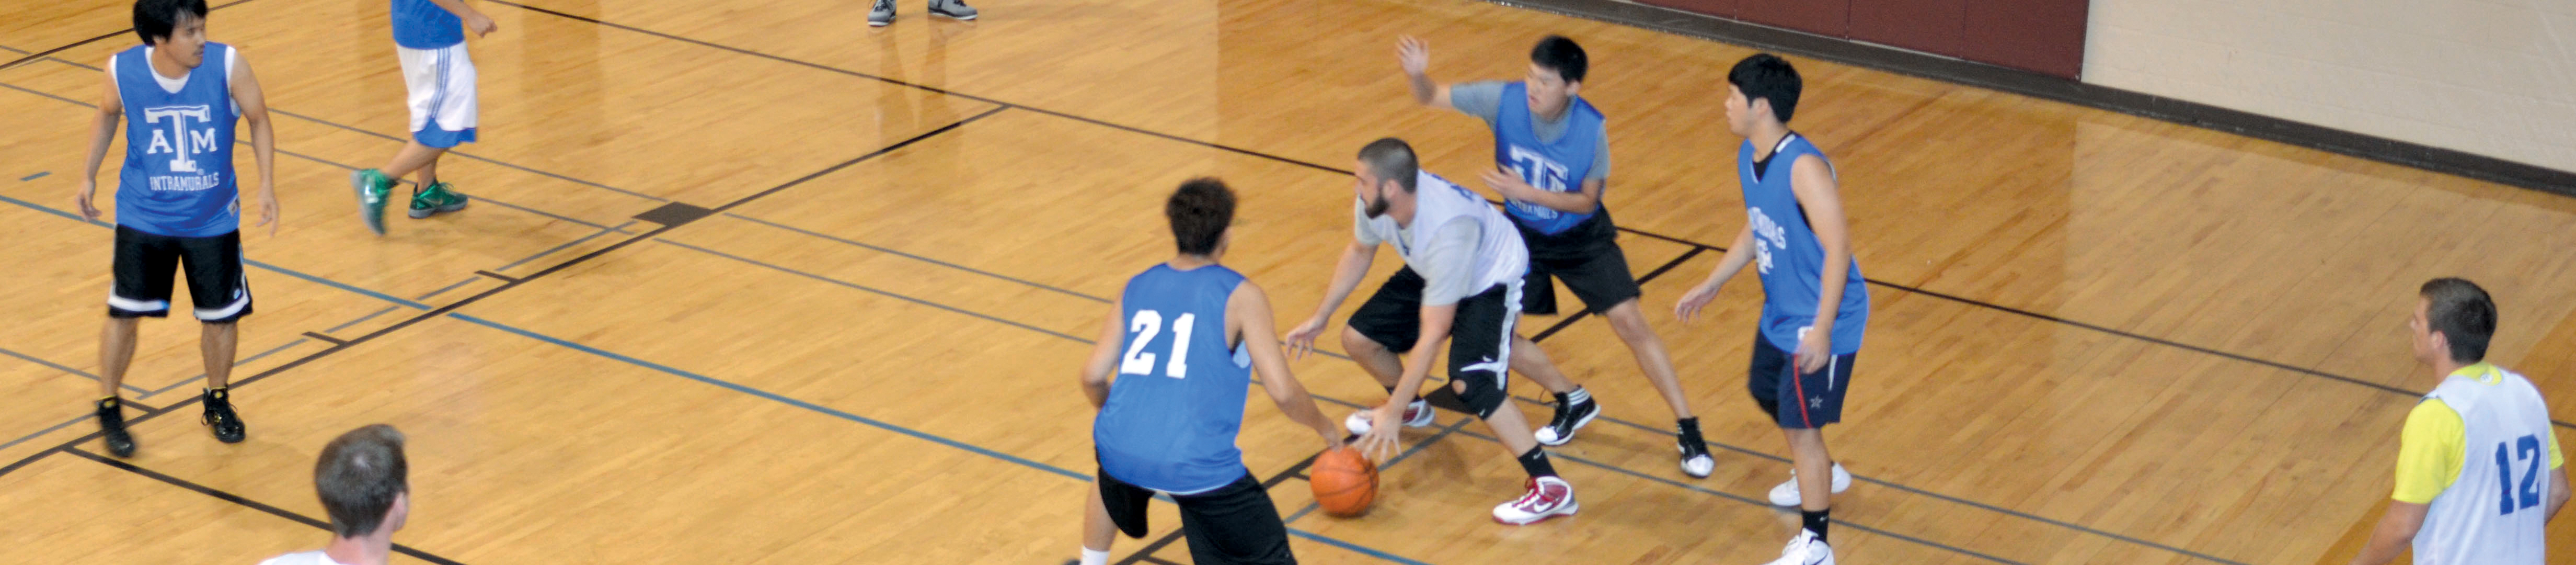 Intramural Sports Basketball